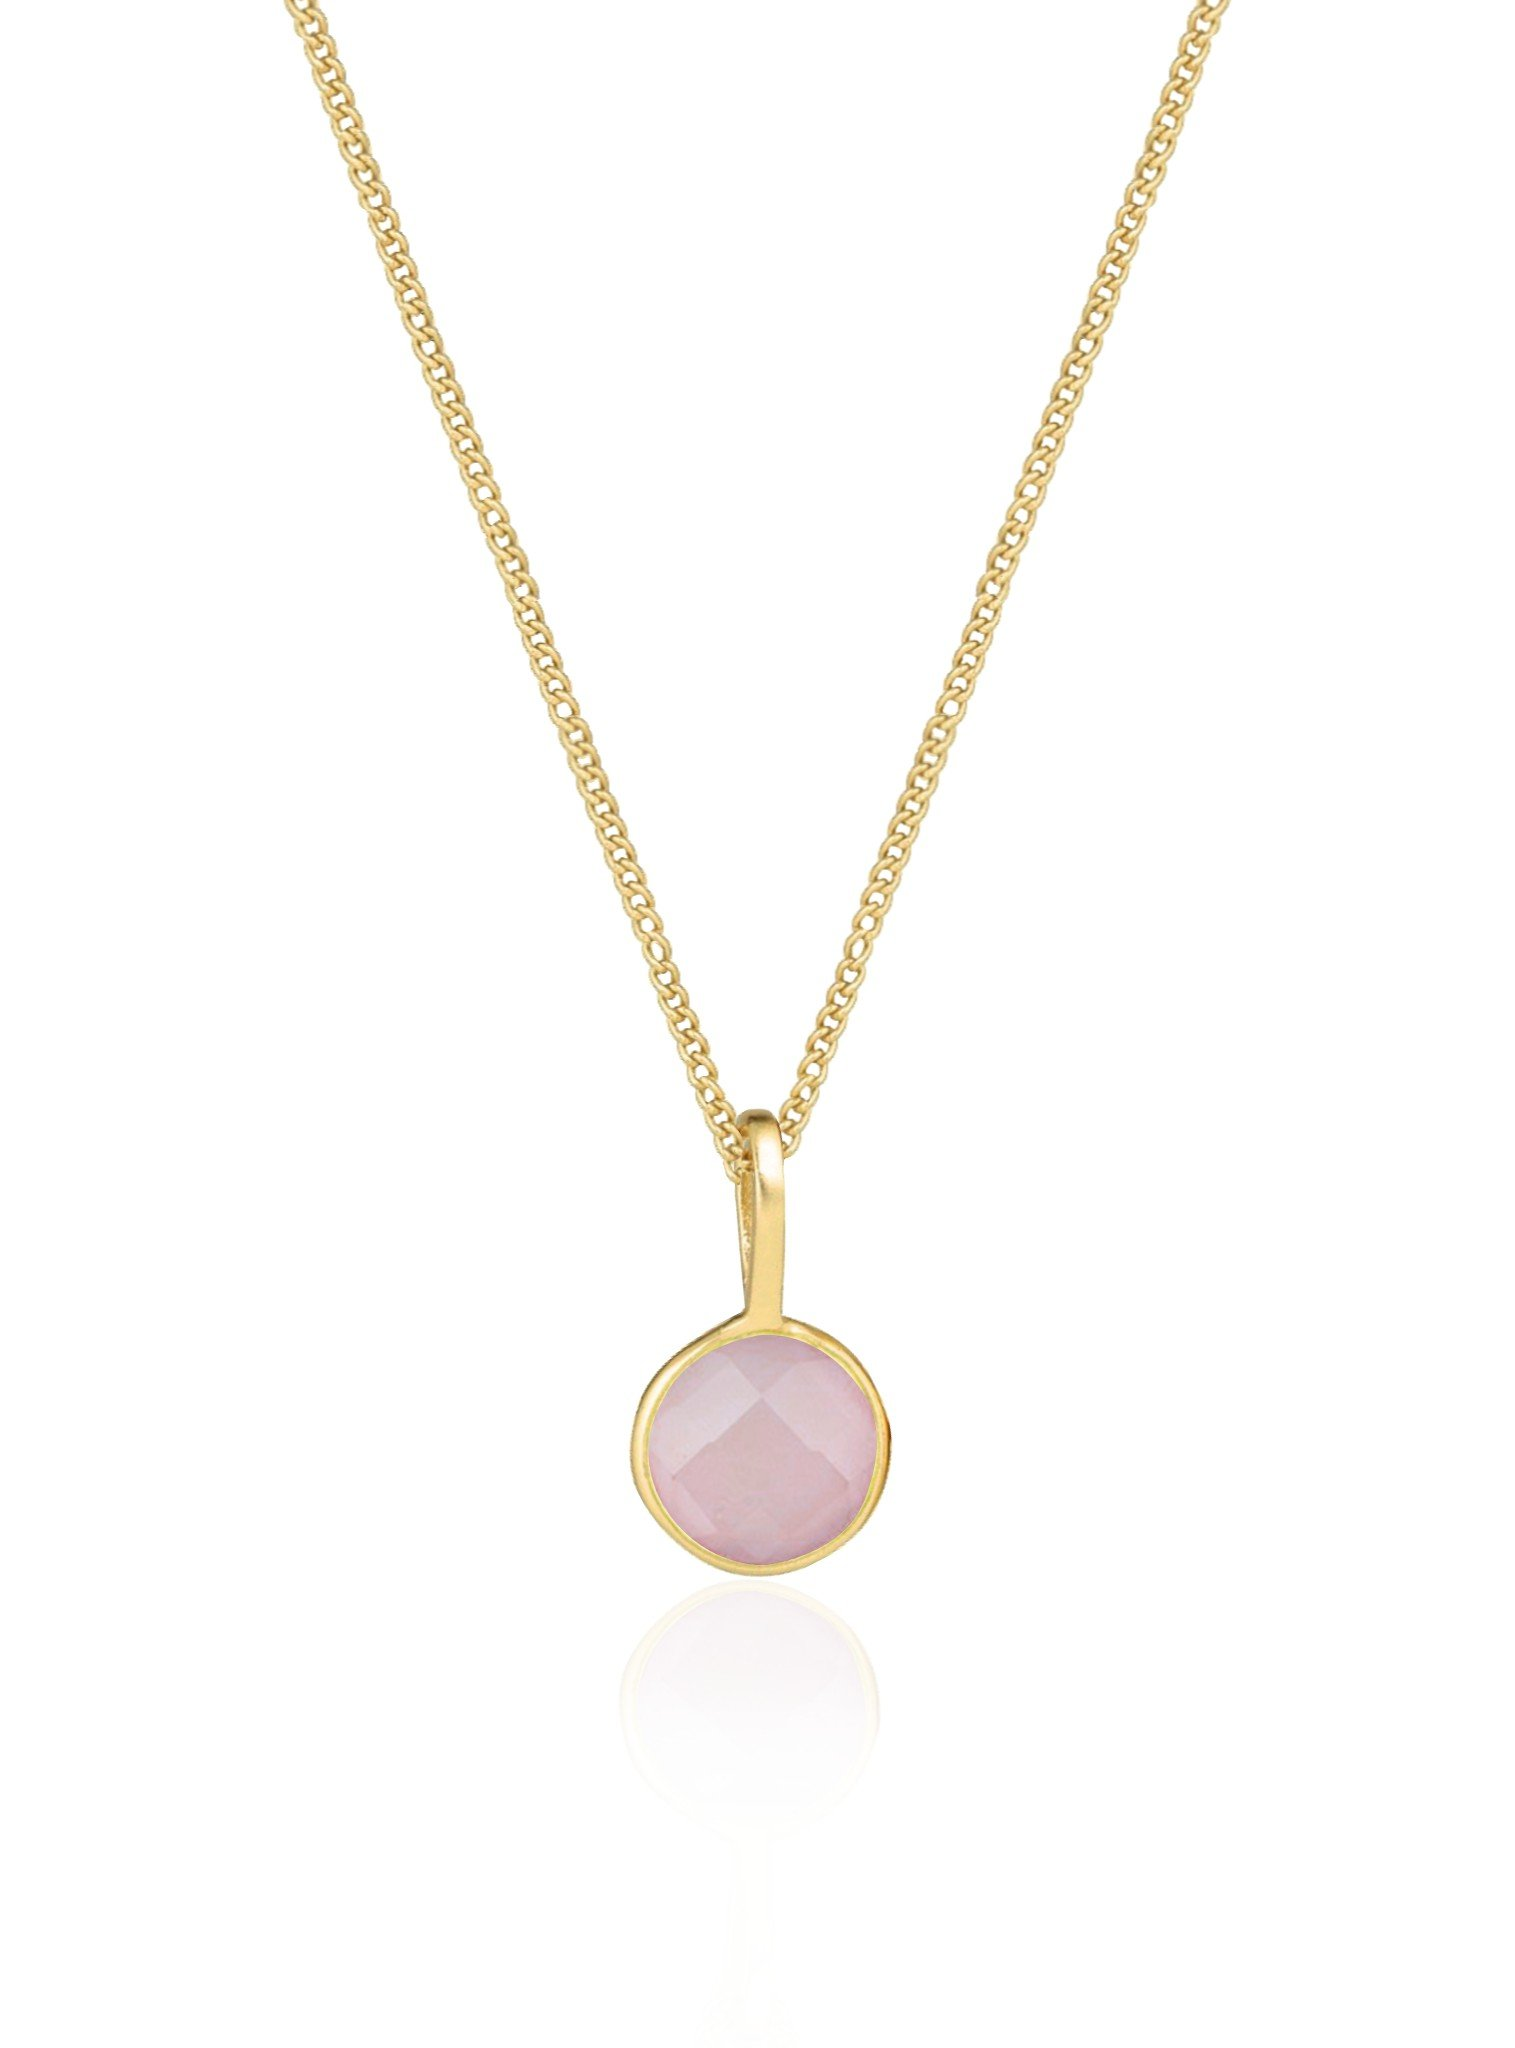 Selene Pendant Rose Quartz Necklace in Gold